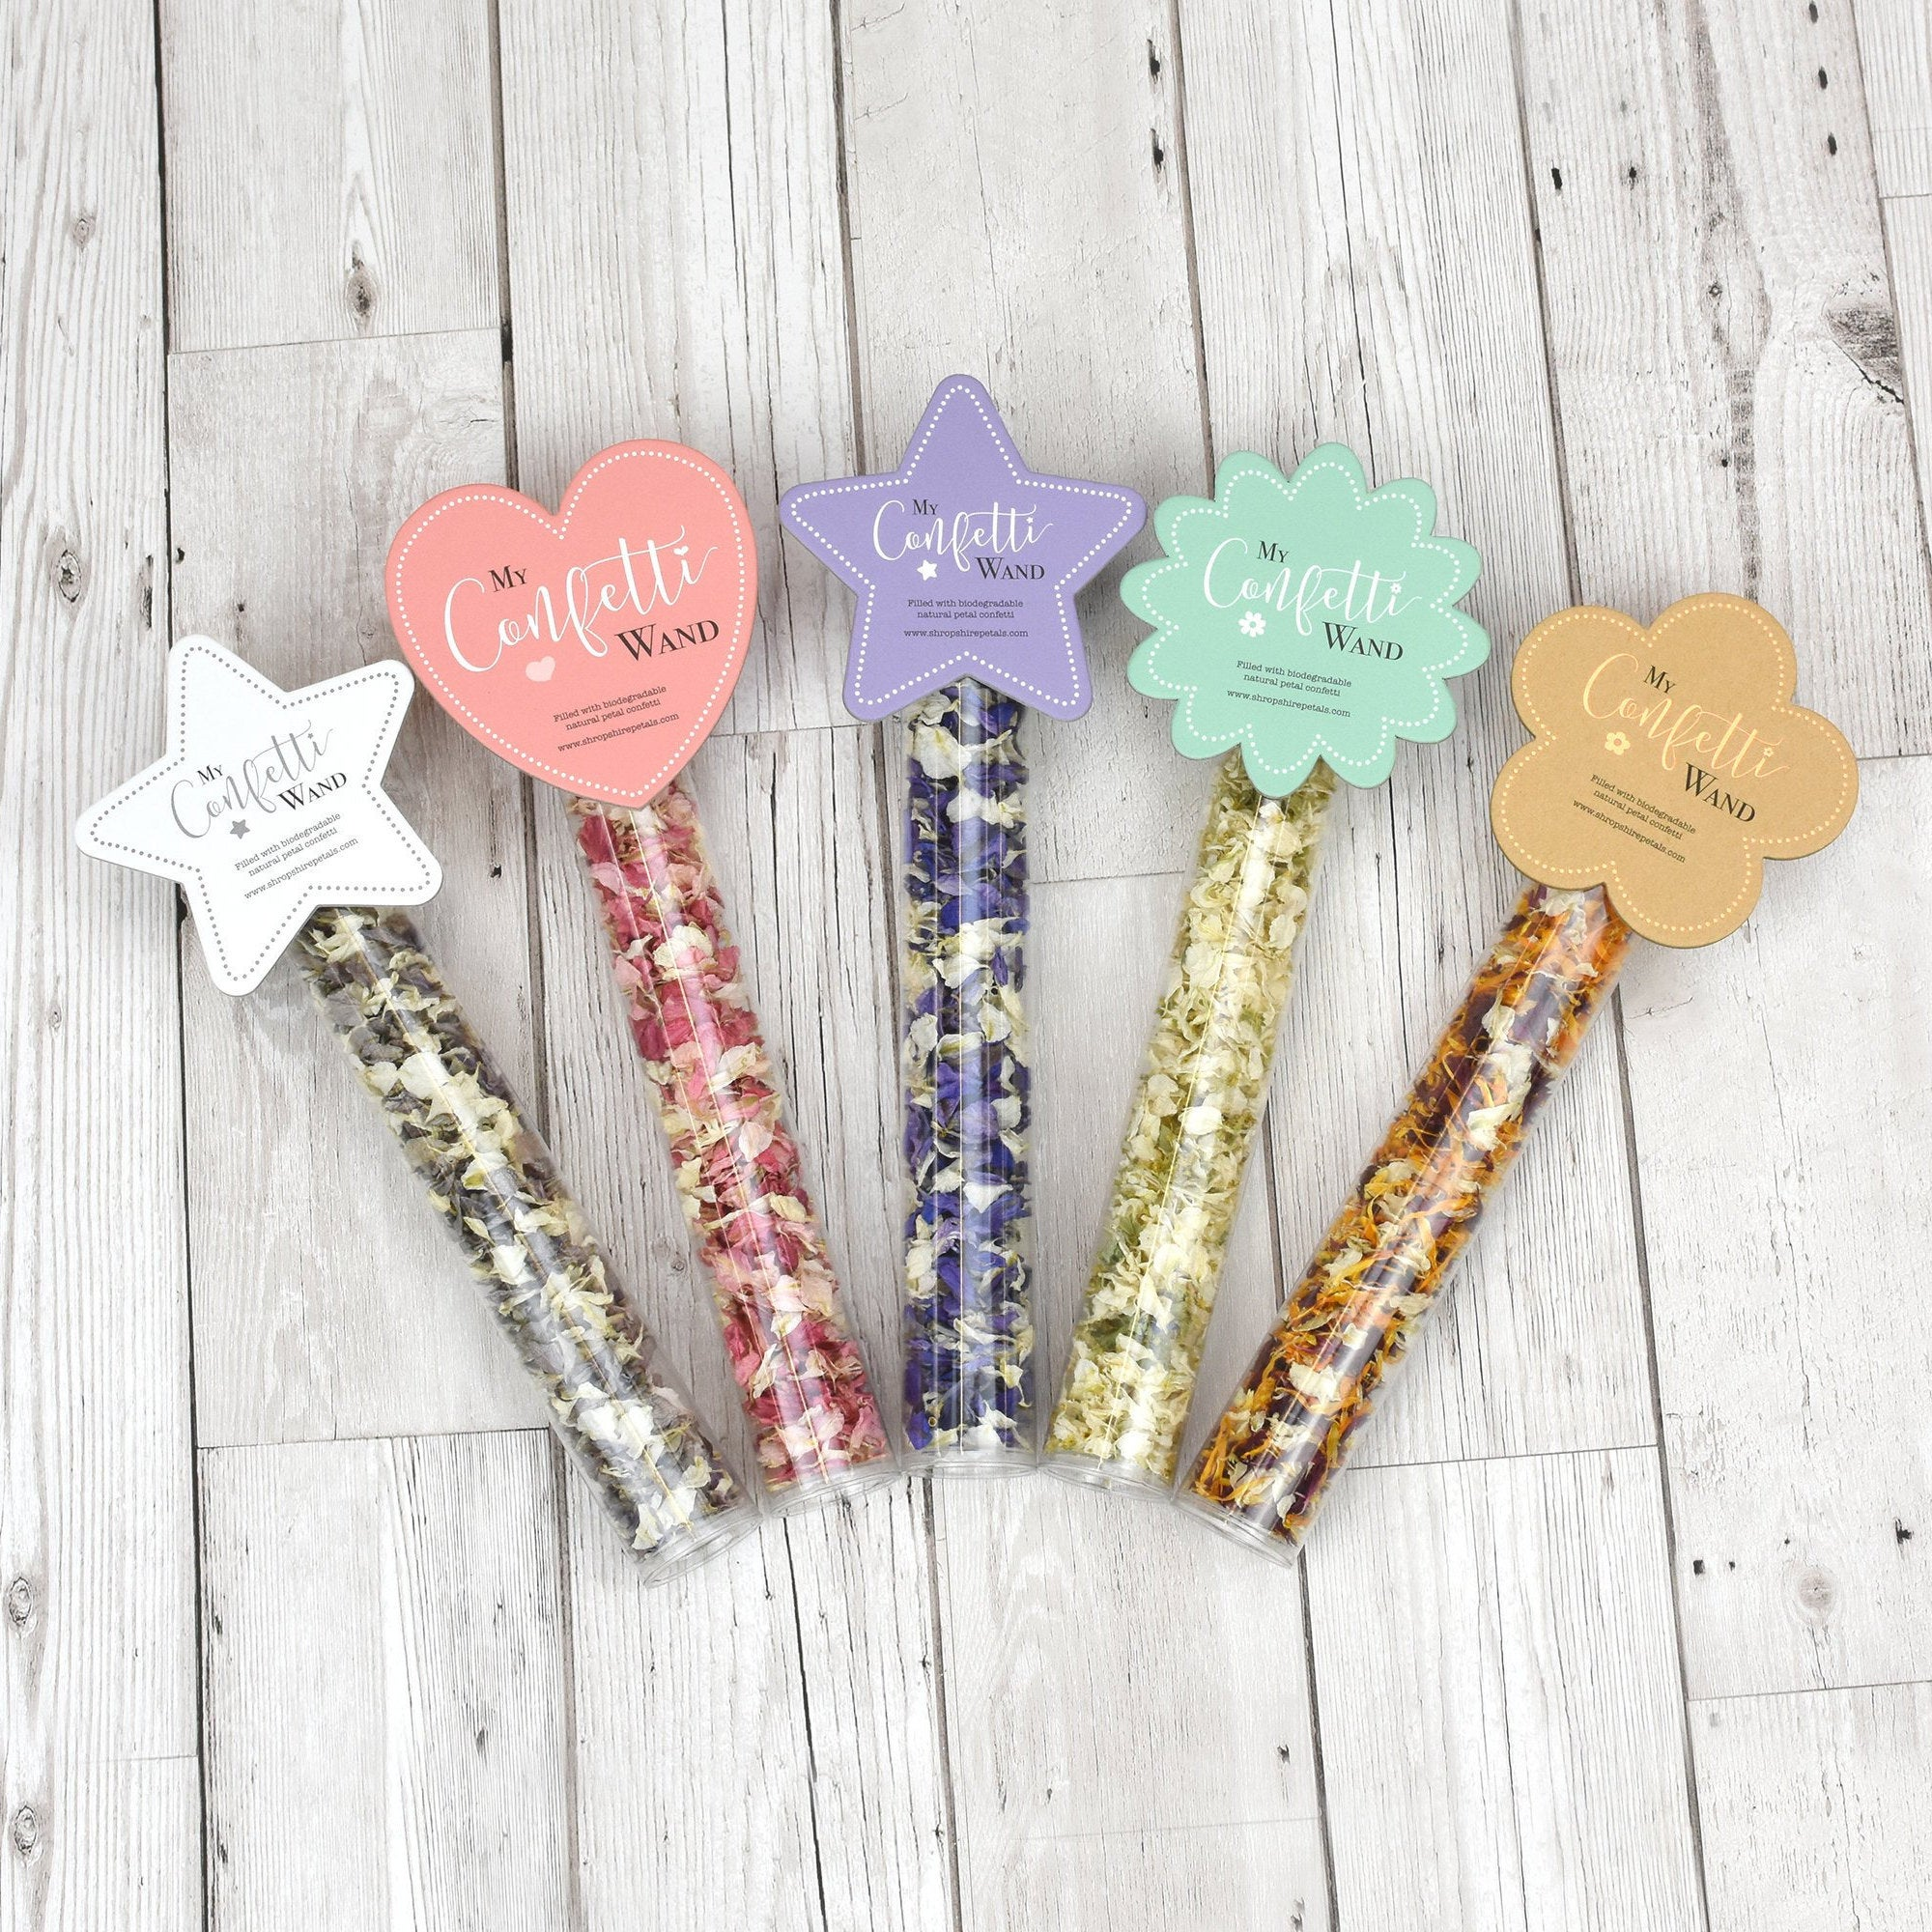 Children's Confetti Wands with Biodegradable Wedding Confetti